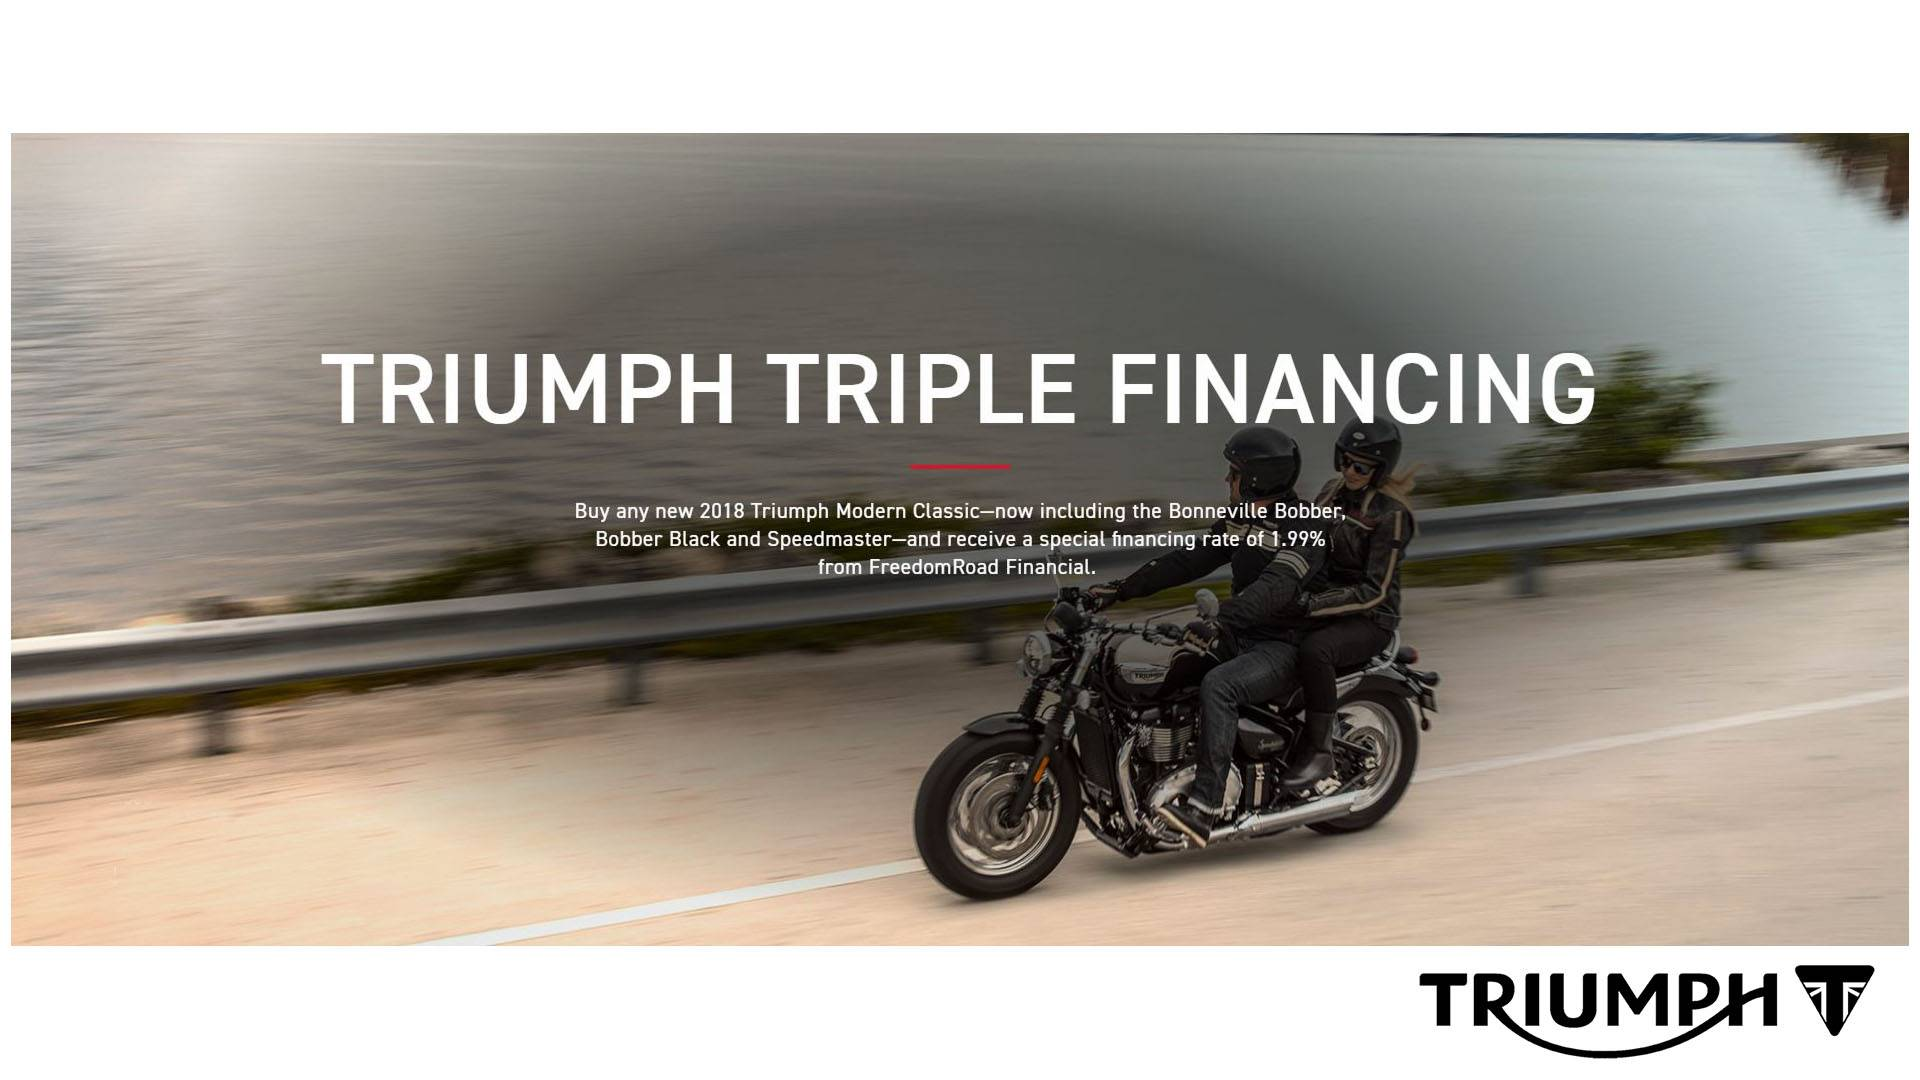 Triumph Triple Financing